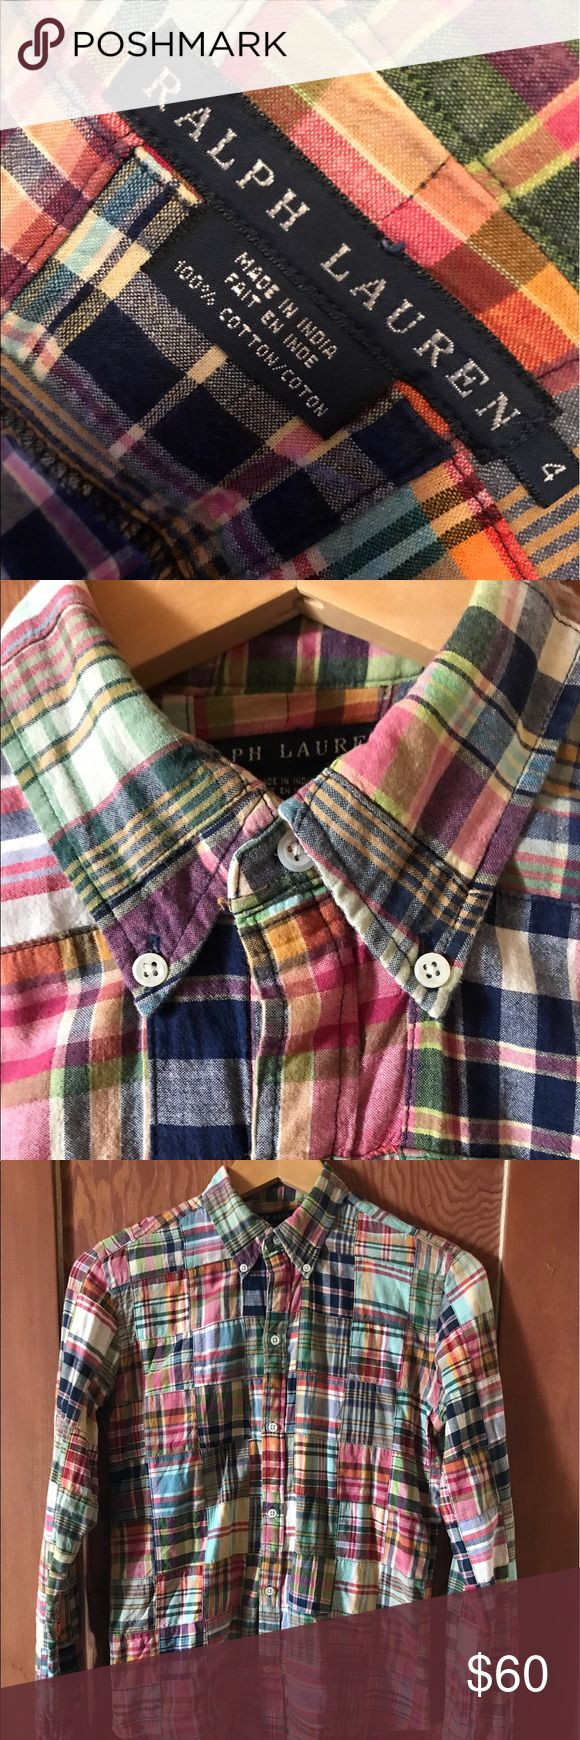 Ralph Lauren patchwork madras shirt sz4 Ralph Lauren black label patchwork madras button down shirt for women. Size 4. Excellent condition. Fabulous shirt indeed...In fact, maybe I want to keep it! J.K. Ralph Lauren Tops Button Down Shirts